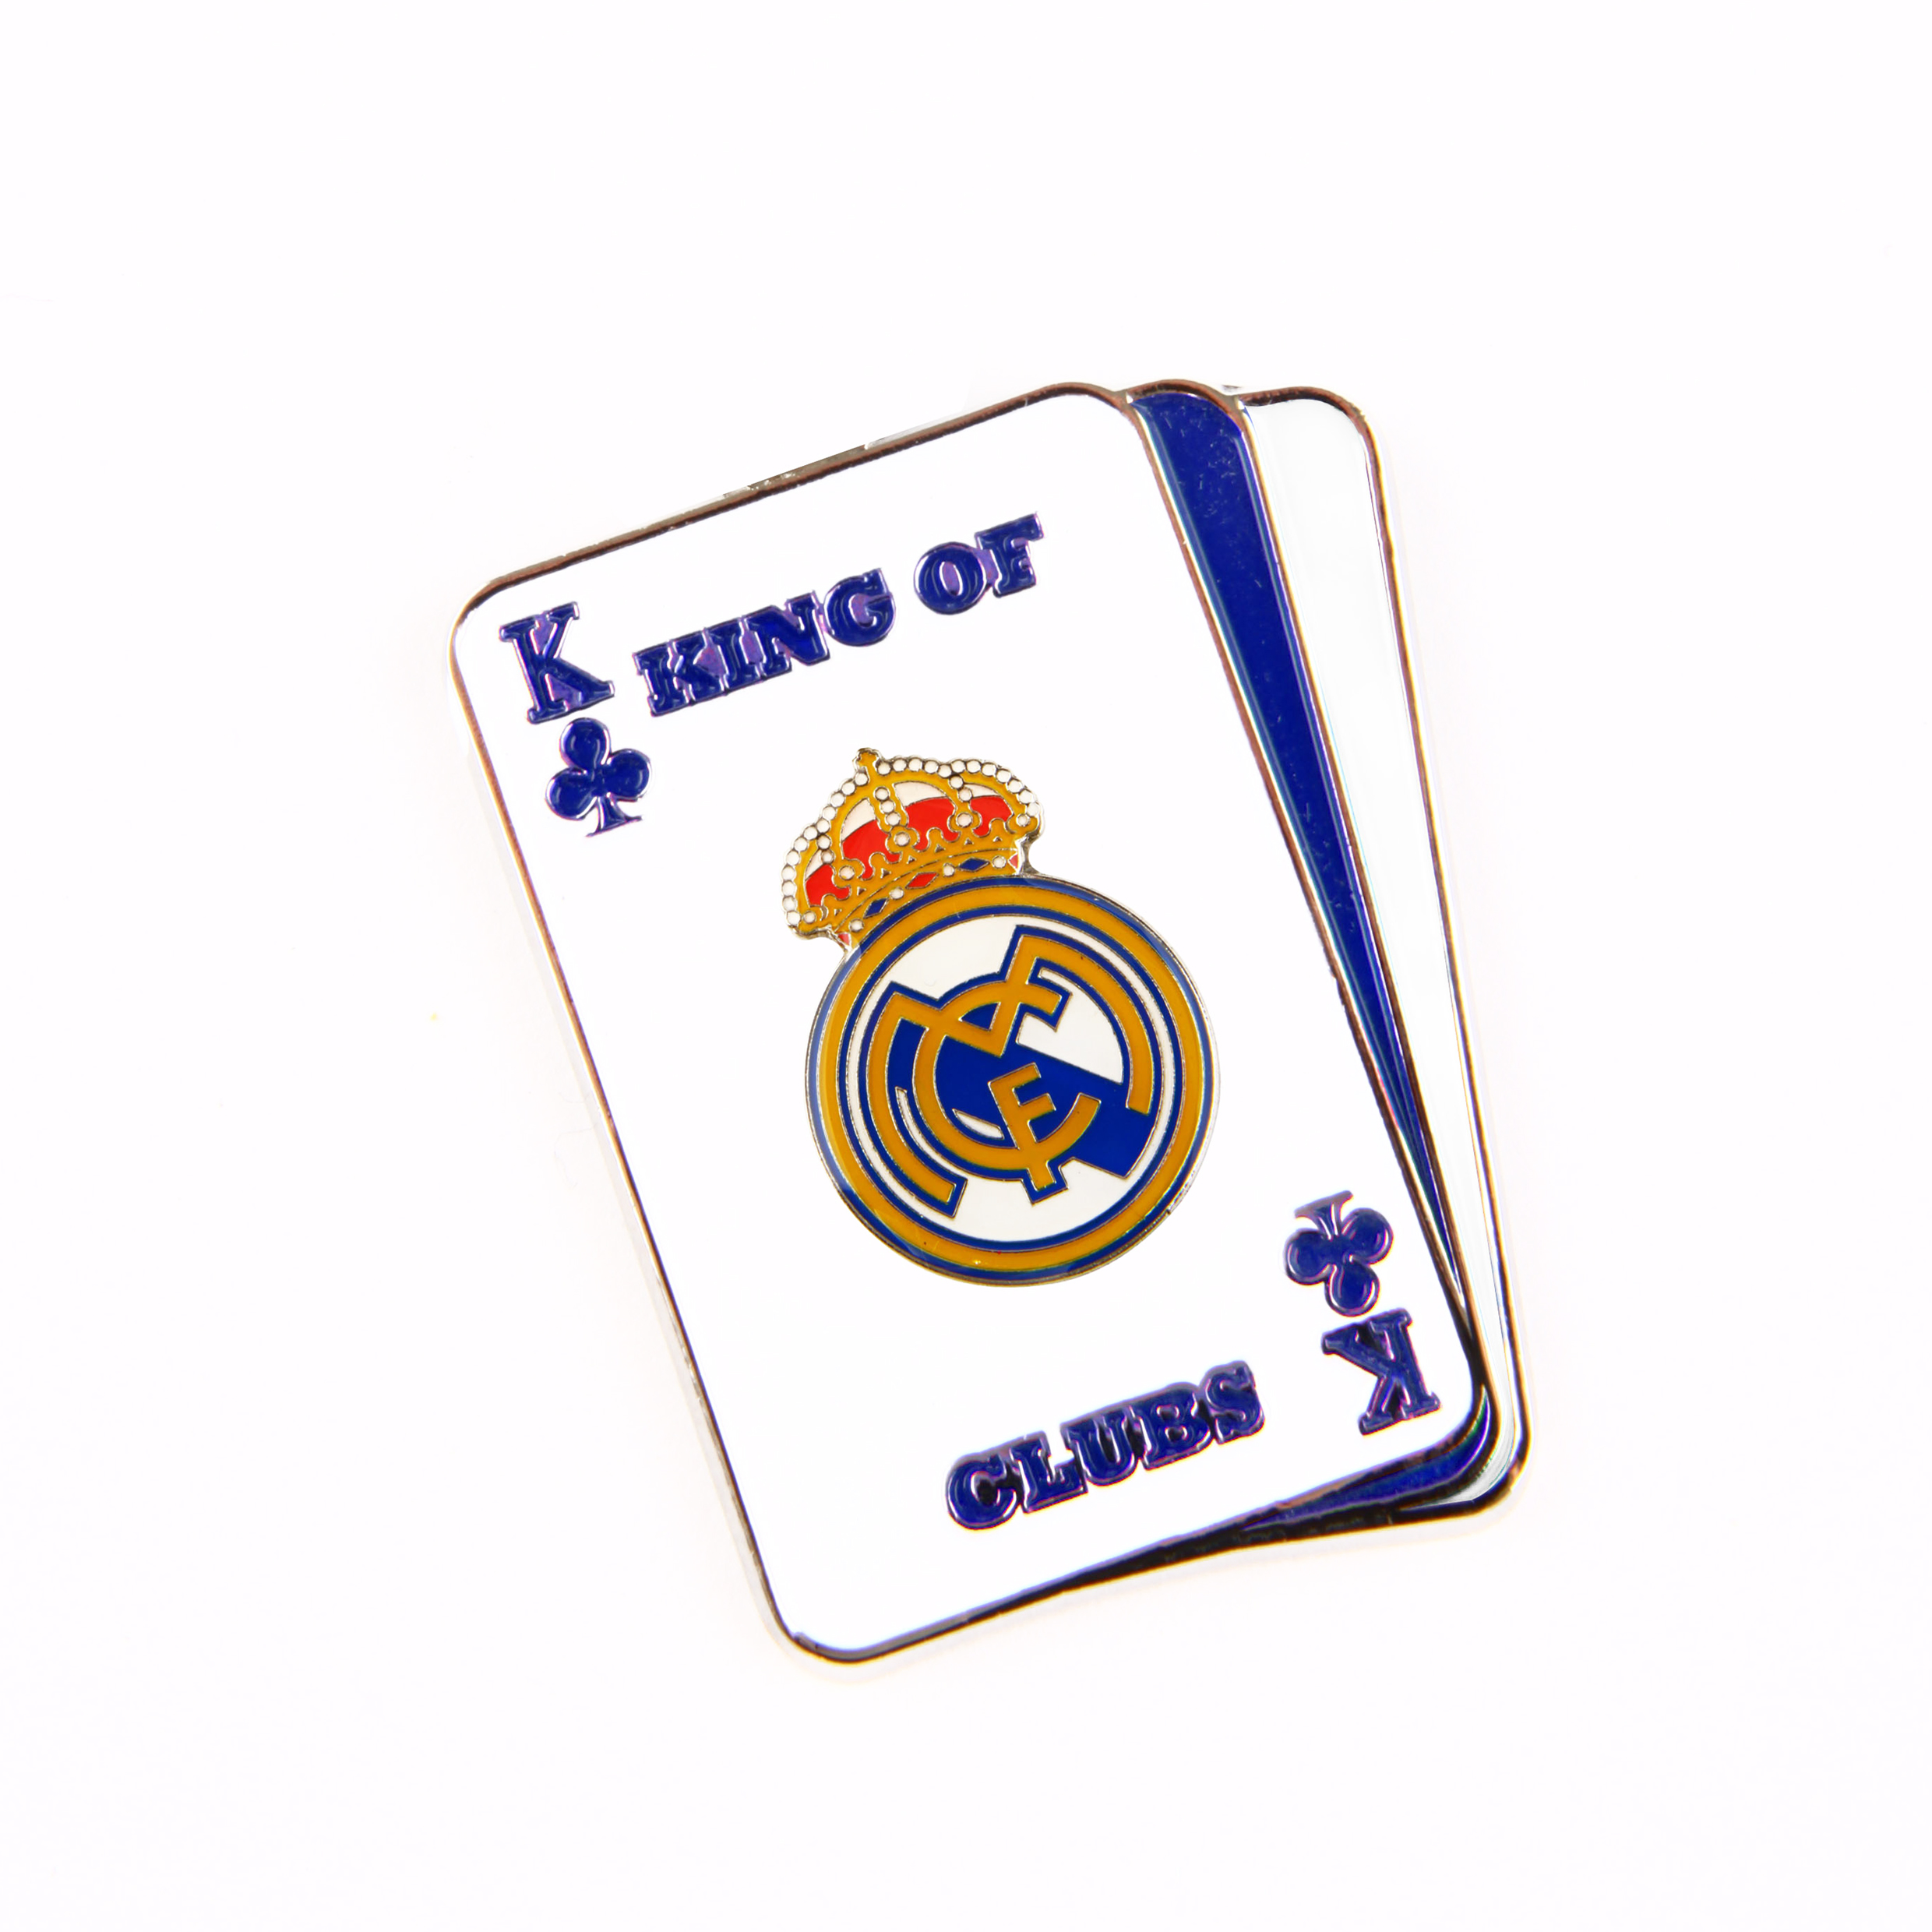 Insignia rey de trboles Real Madrid